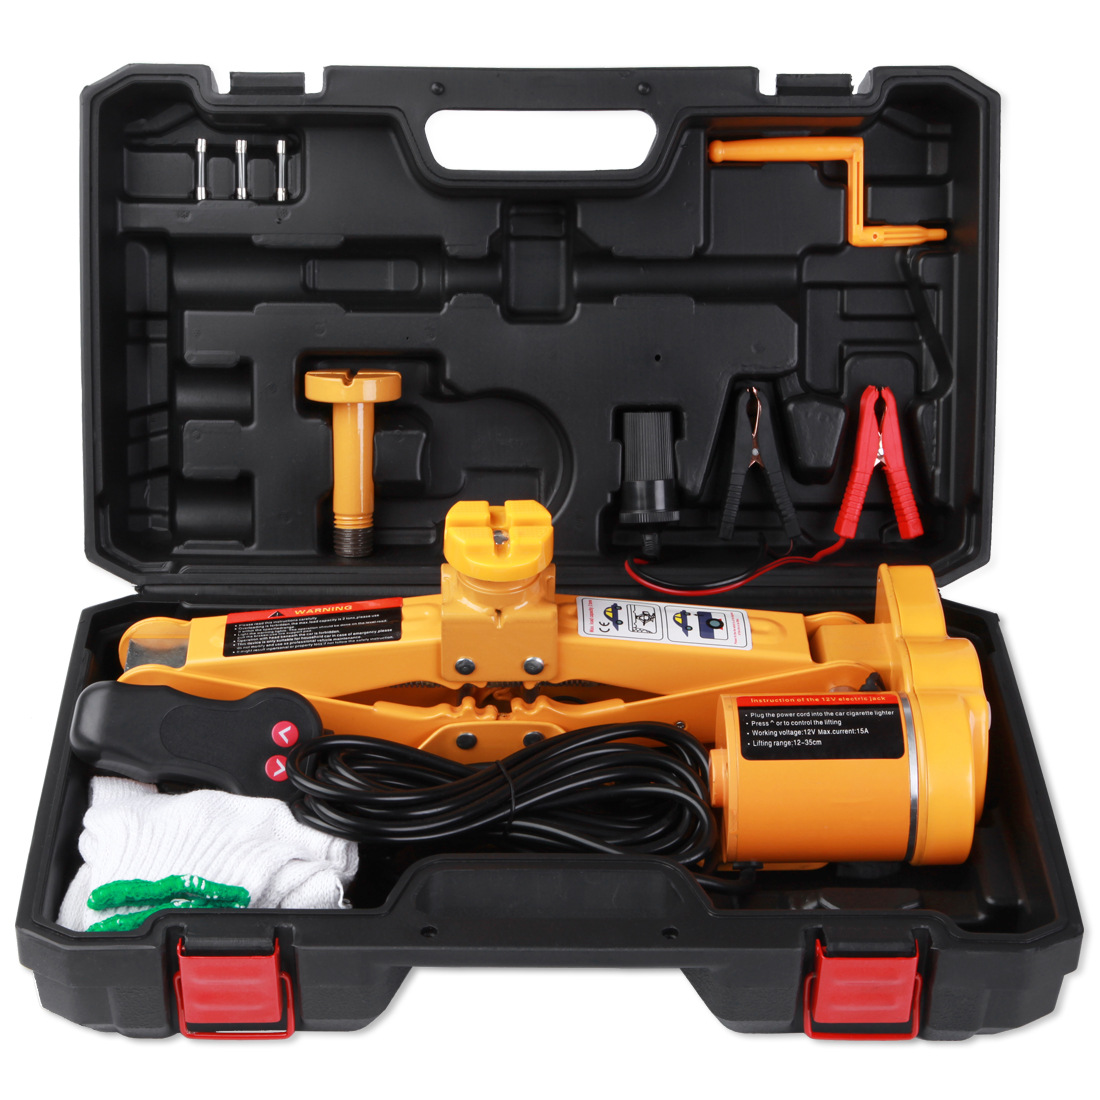 12V Car Jack Lift Multifunctional Auto Electric Hydraulic Tire Repair Tool Kit Powerful And Stable Auto Lifting Repair Tools